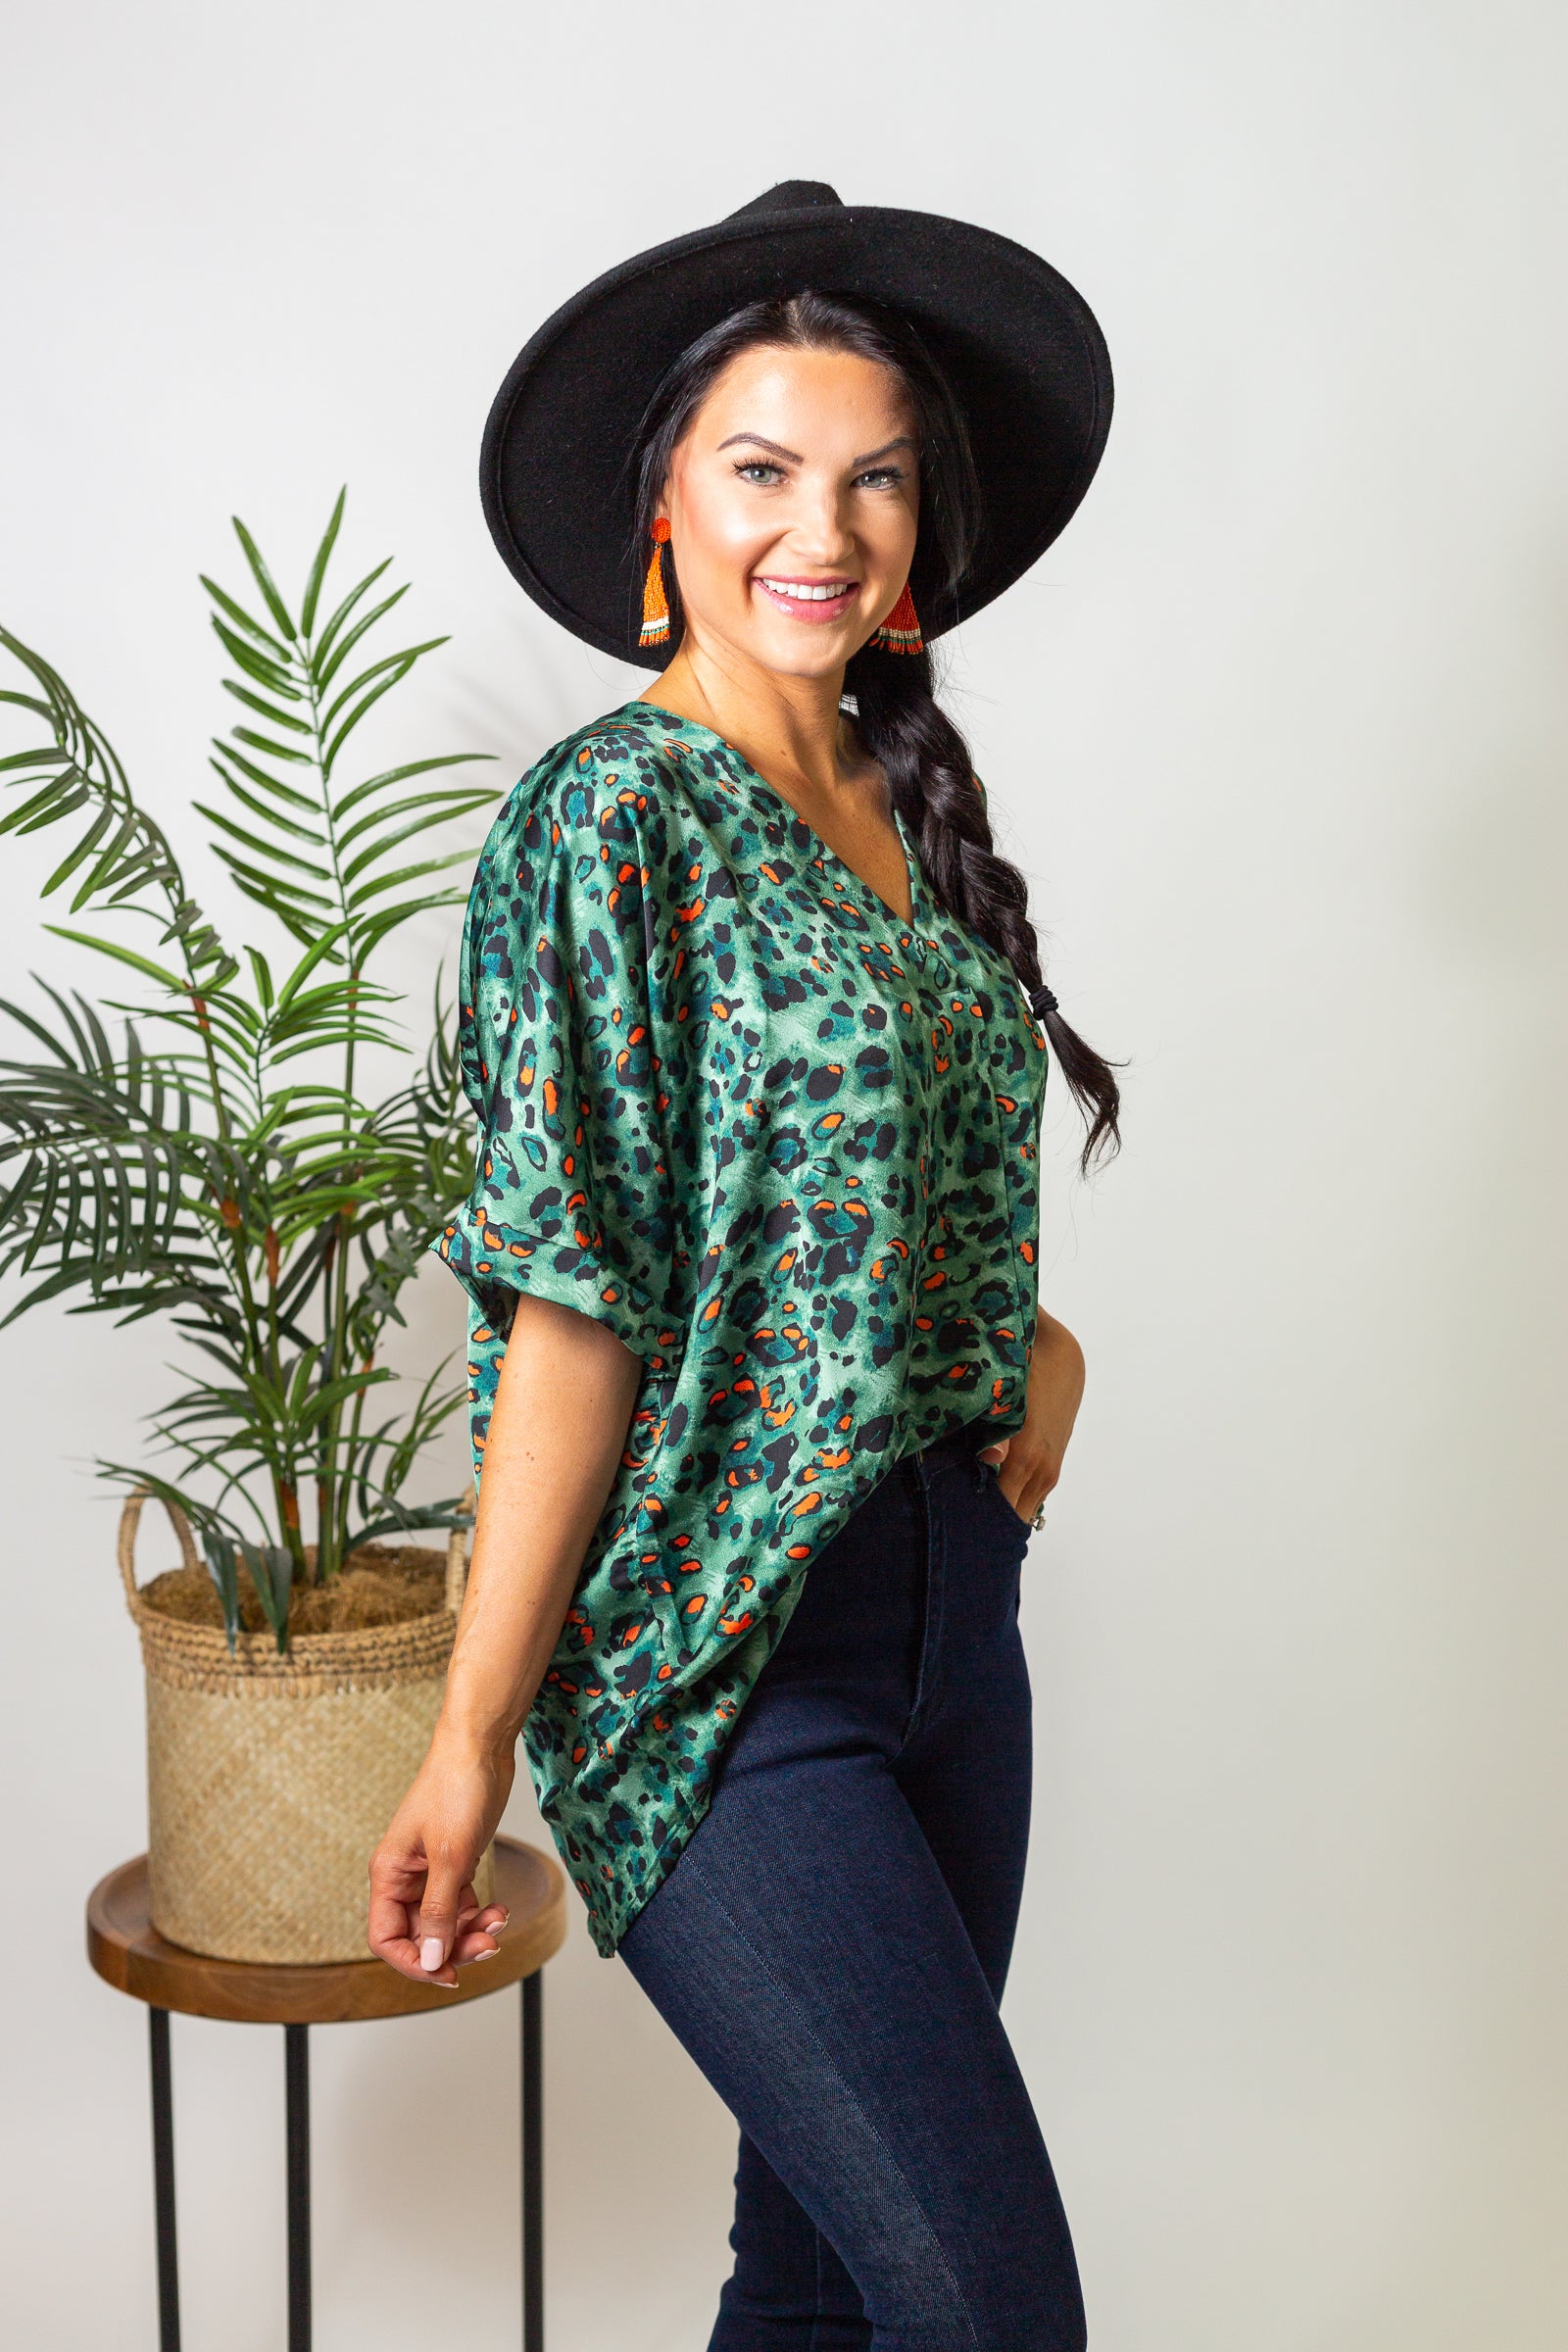 Leopard prints cover this satiny blouse, short cuffed sleeves that attach to a gentle surplice neckline with a folded over center detail on a loose and oversized bodice silhouette.